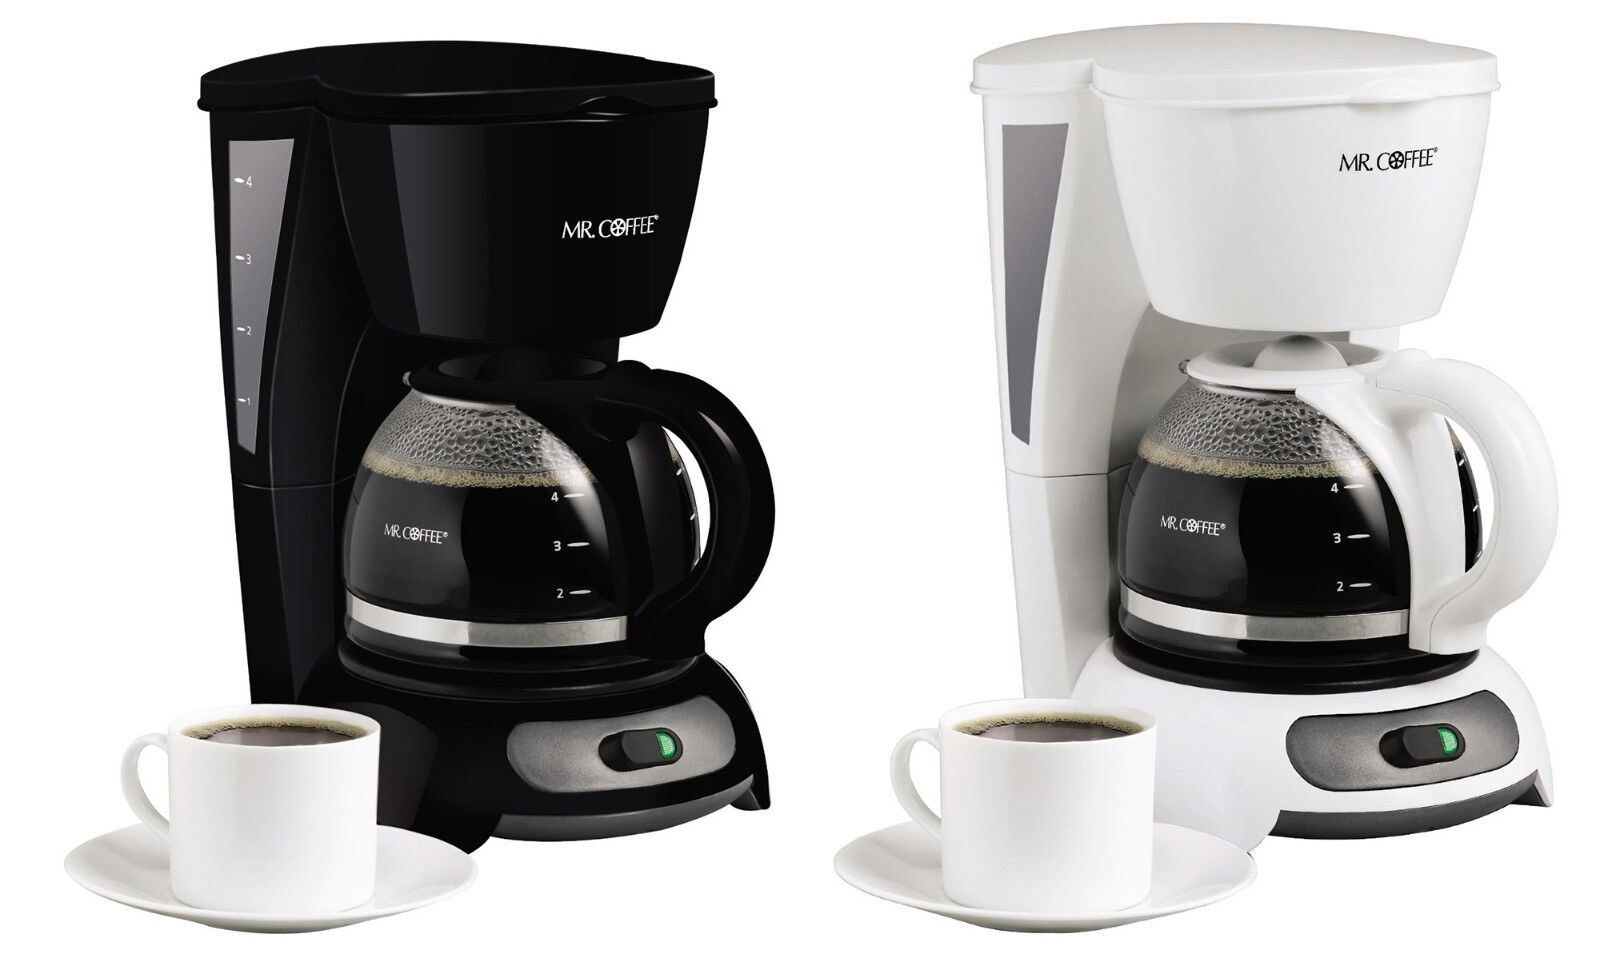 Mr Coffee Maker Clean Light Stays On : Mr. Coffee TF4 4-Cup Switch Coffeemaker, 2 Colors eBay